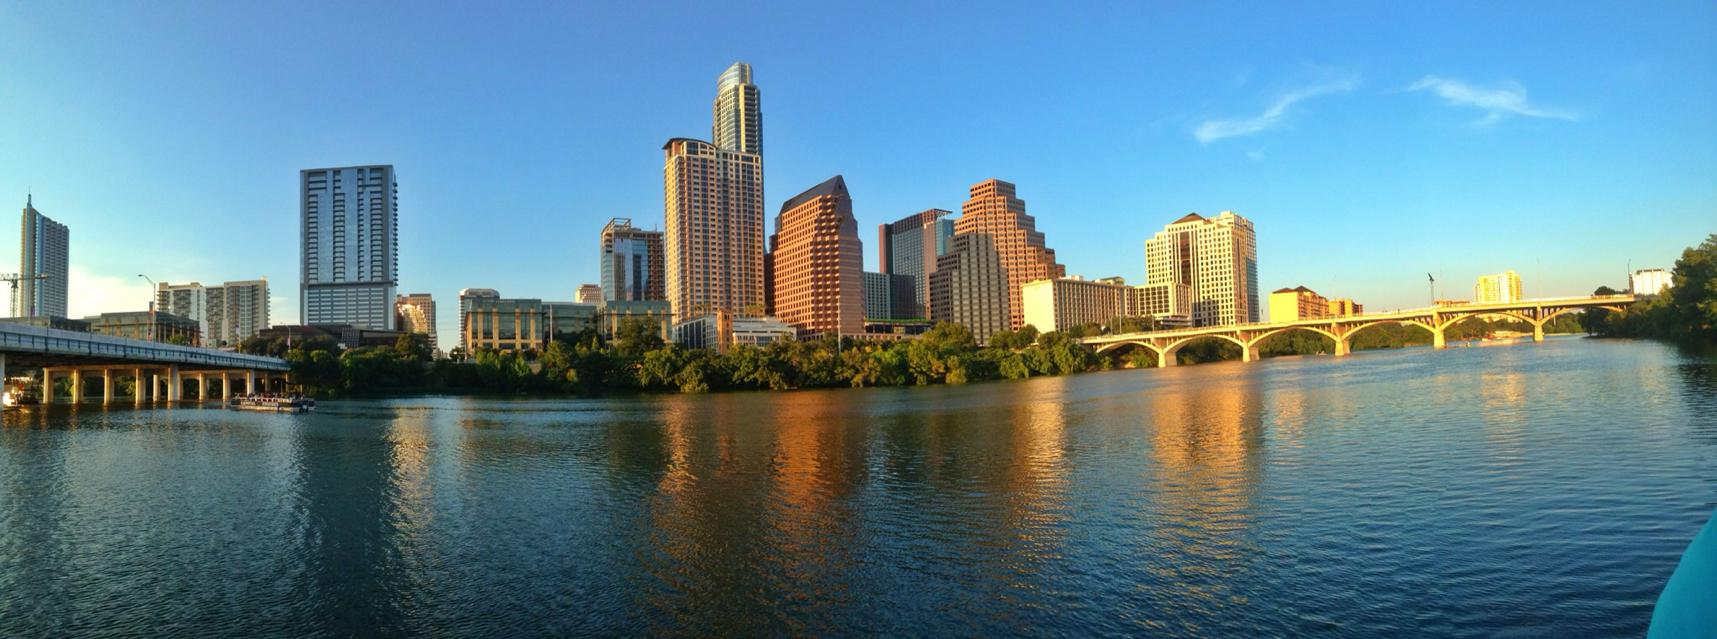 property-management-company-austin-texas-pic-2